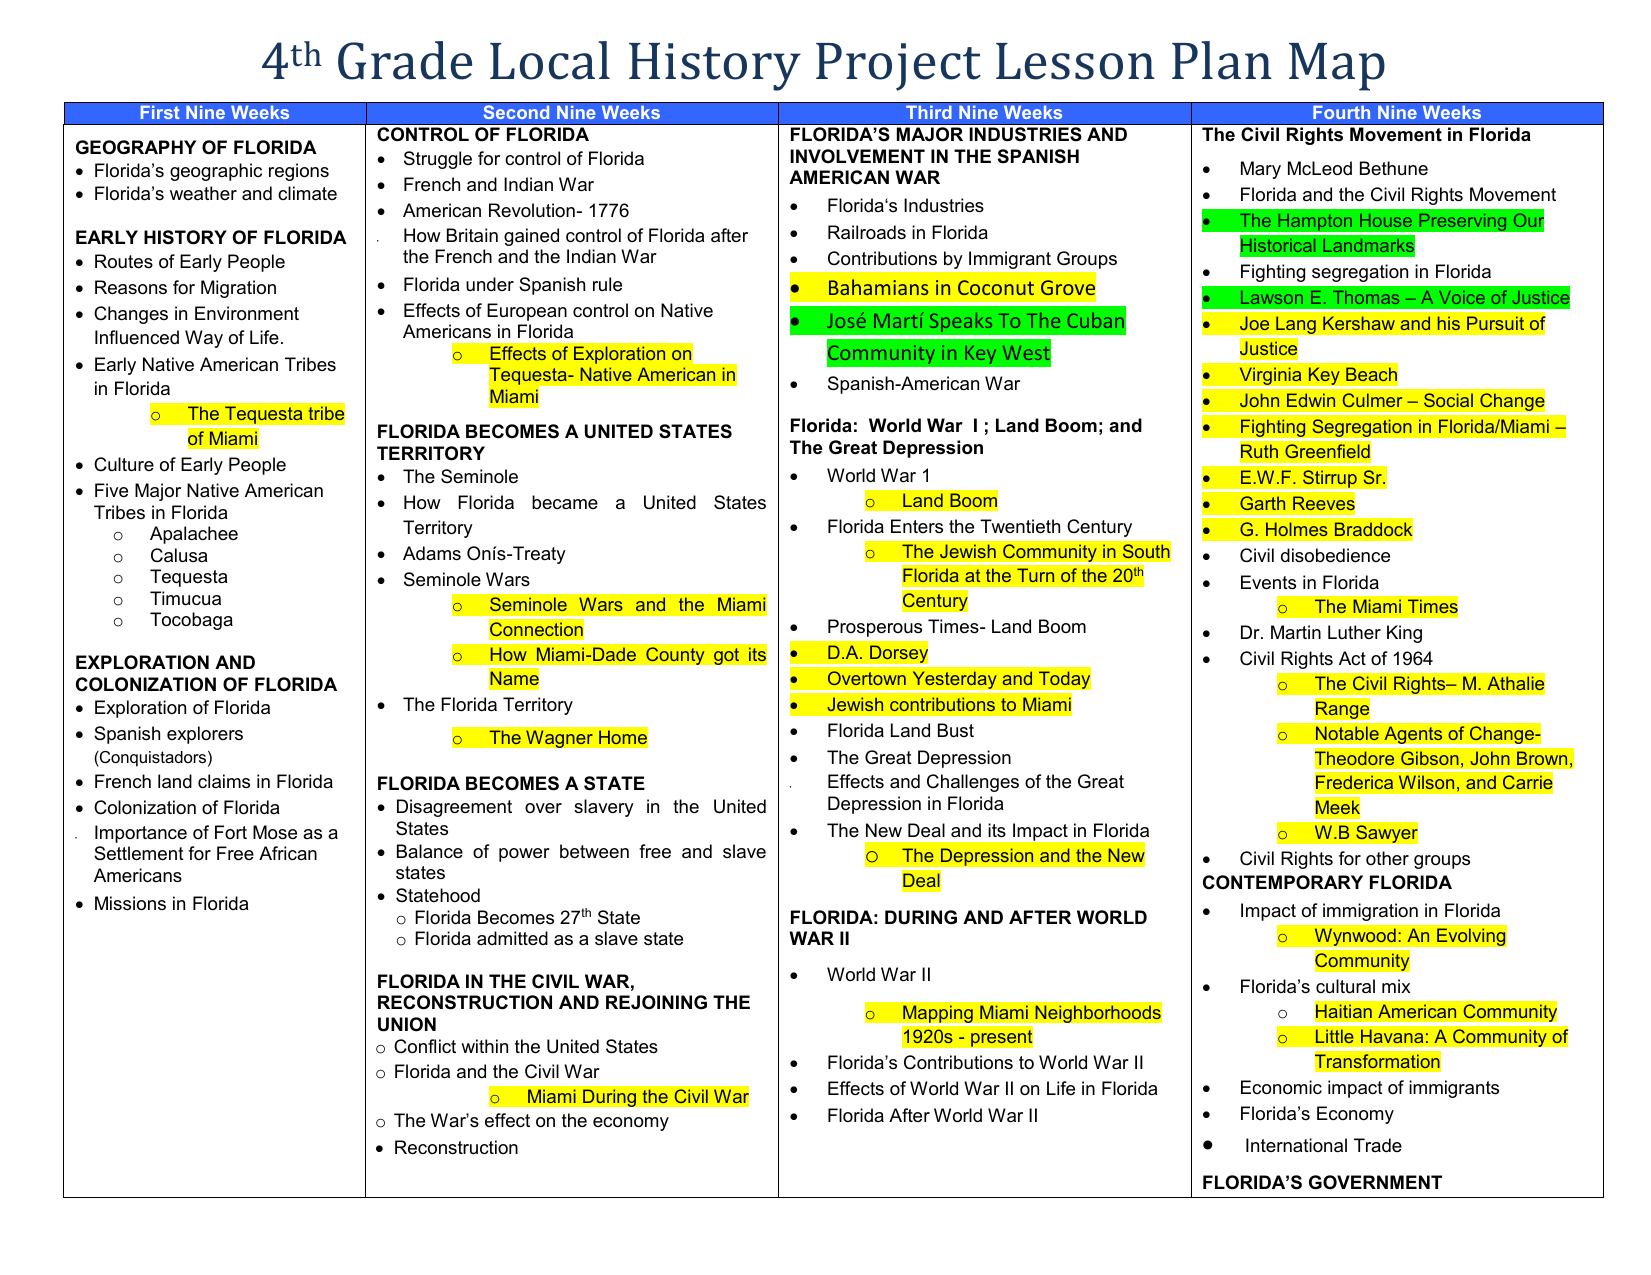 4th 5th Grade Local History Project Lesson Plan Maps